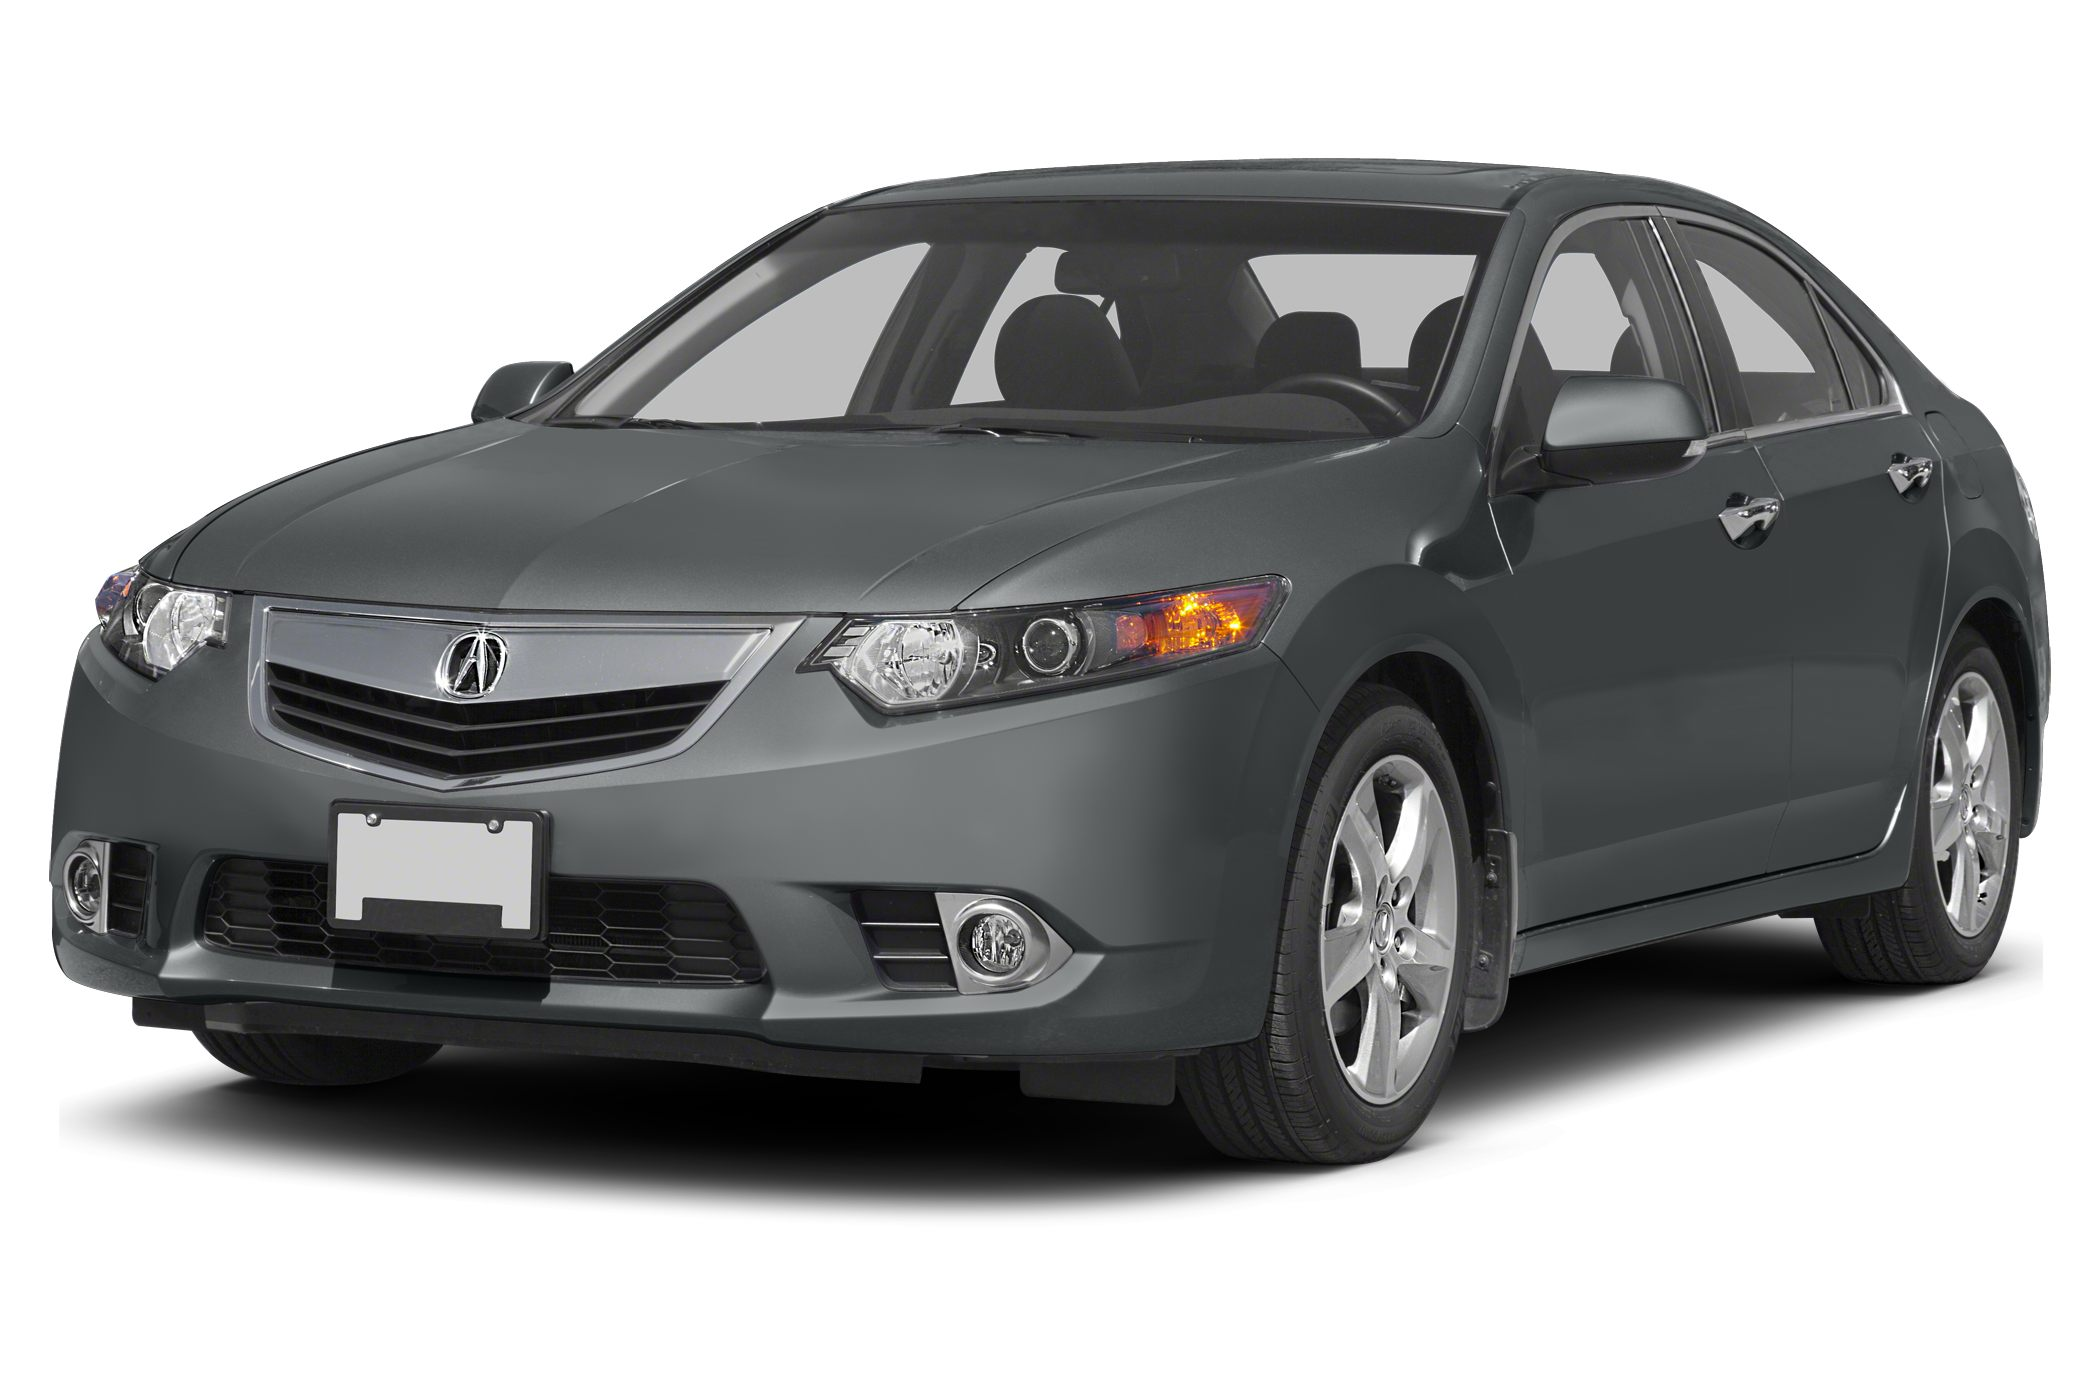 2012 Acura TSX 2.4 Sedan for sale in Springfield for $19,995 with 29,992 miles